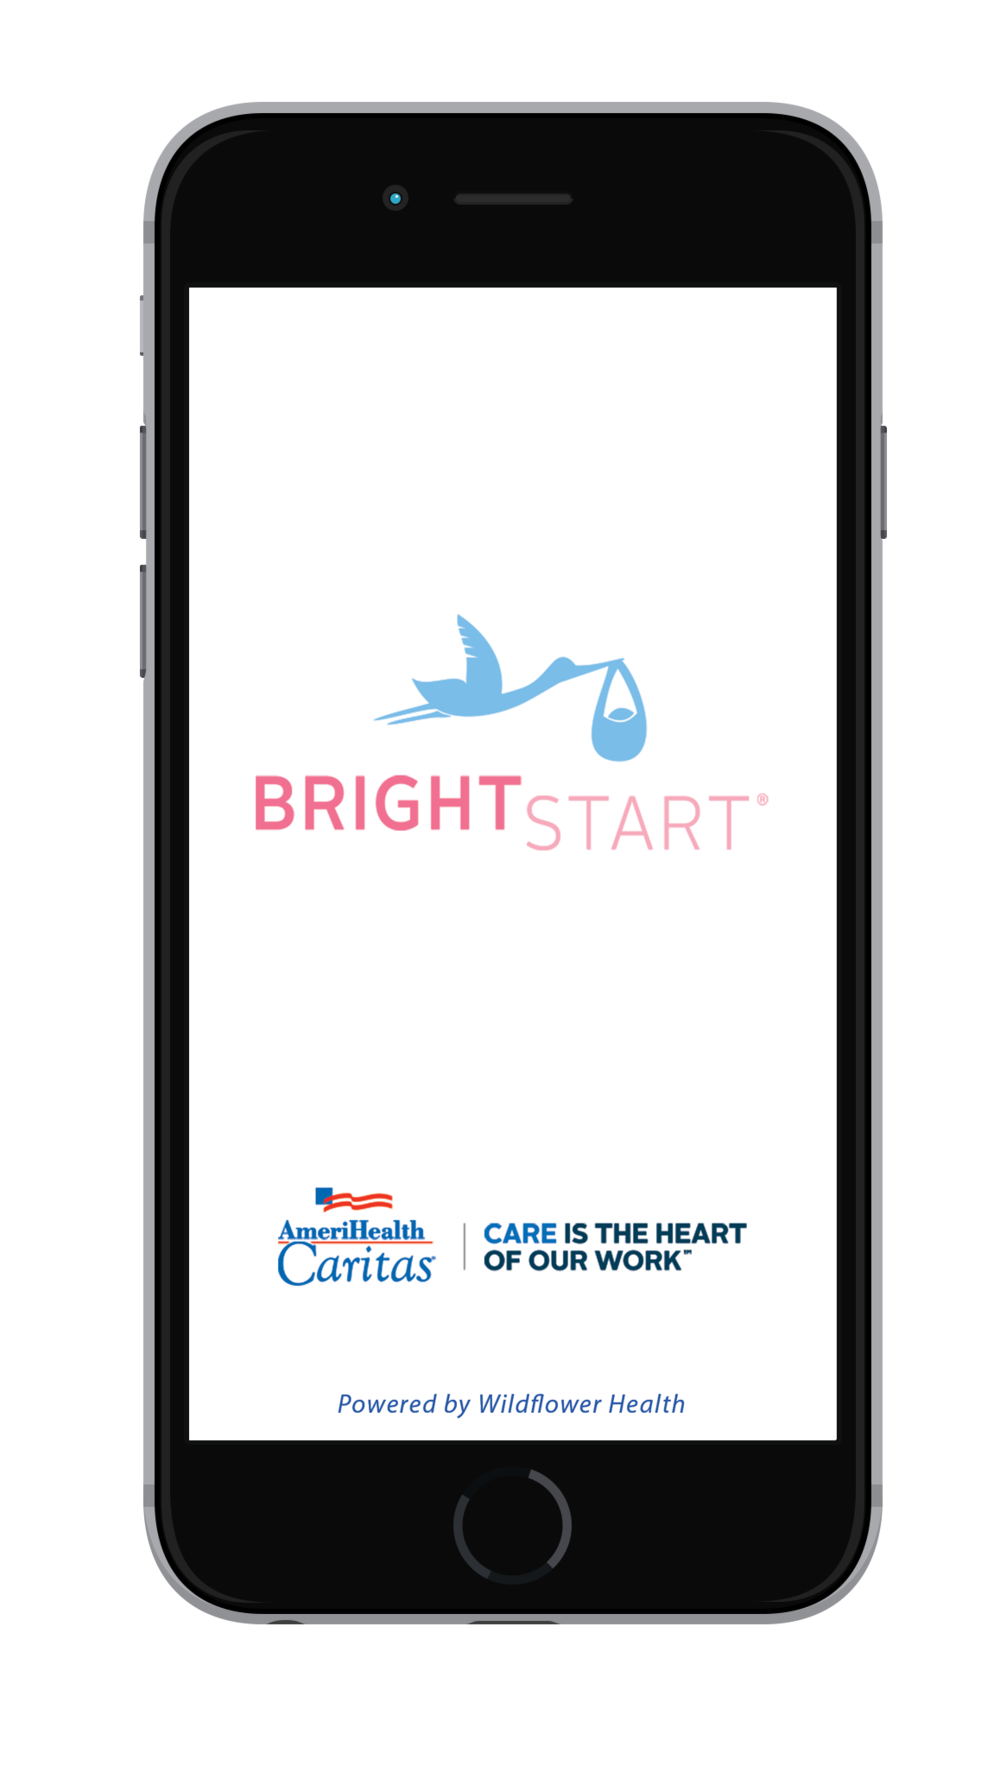 Have a healthy, happy baby. If you're an AmeriHealth Caritas member and a soon-to-be mom, download Bright Start Pregnancy Tracker today.